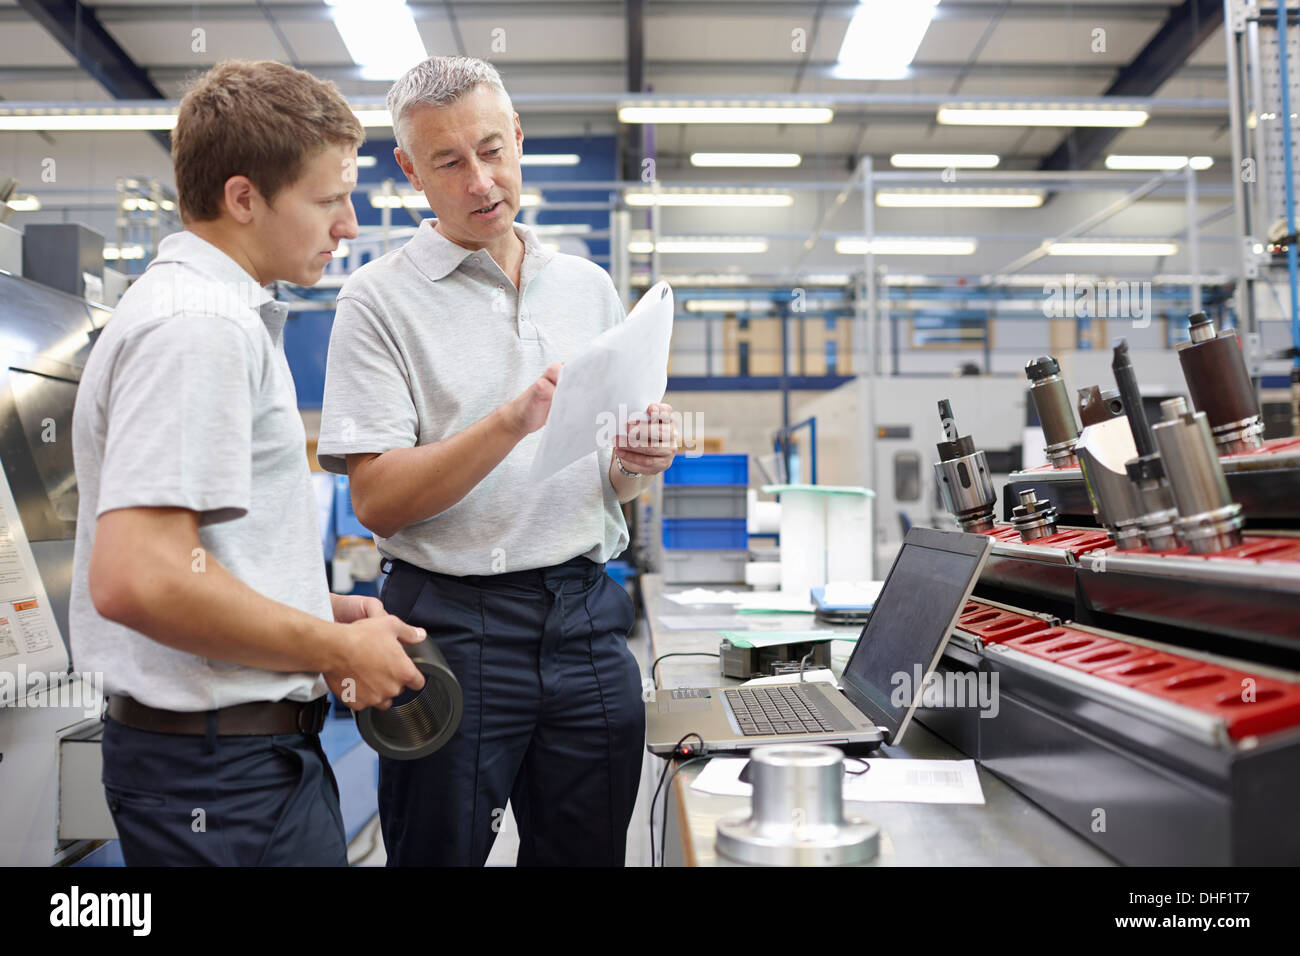 Worker and manager meeting in engineering warehouse - Stock Image